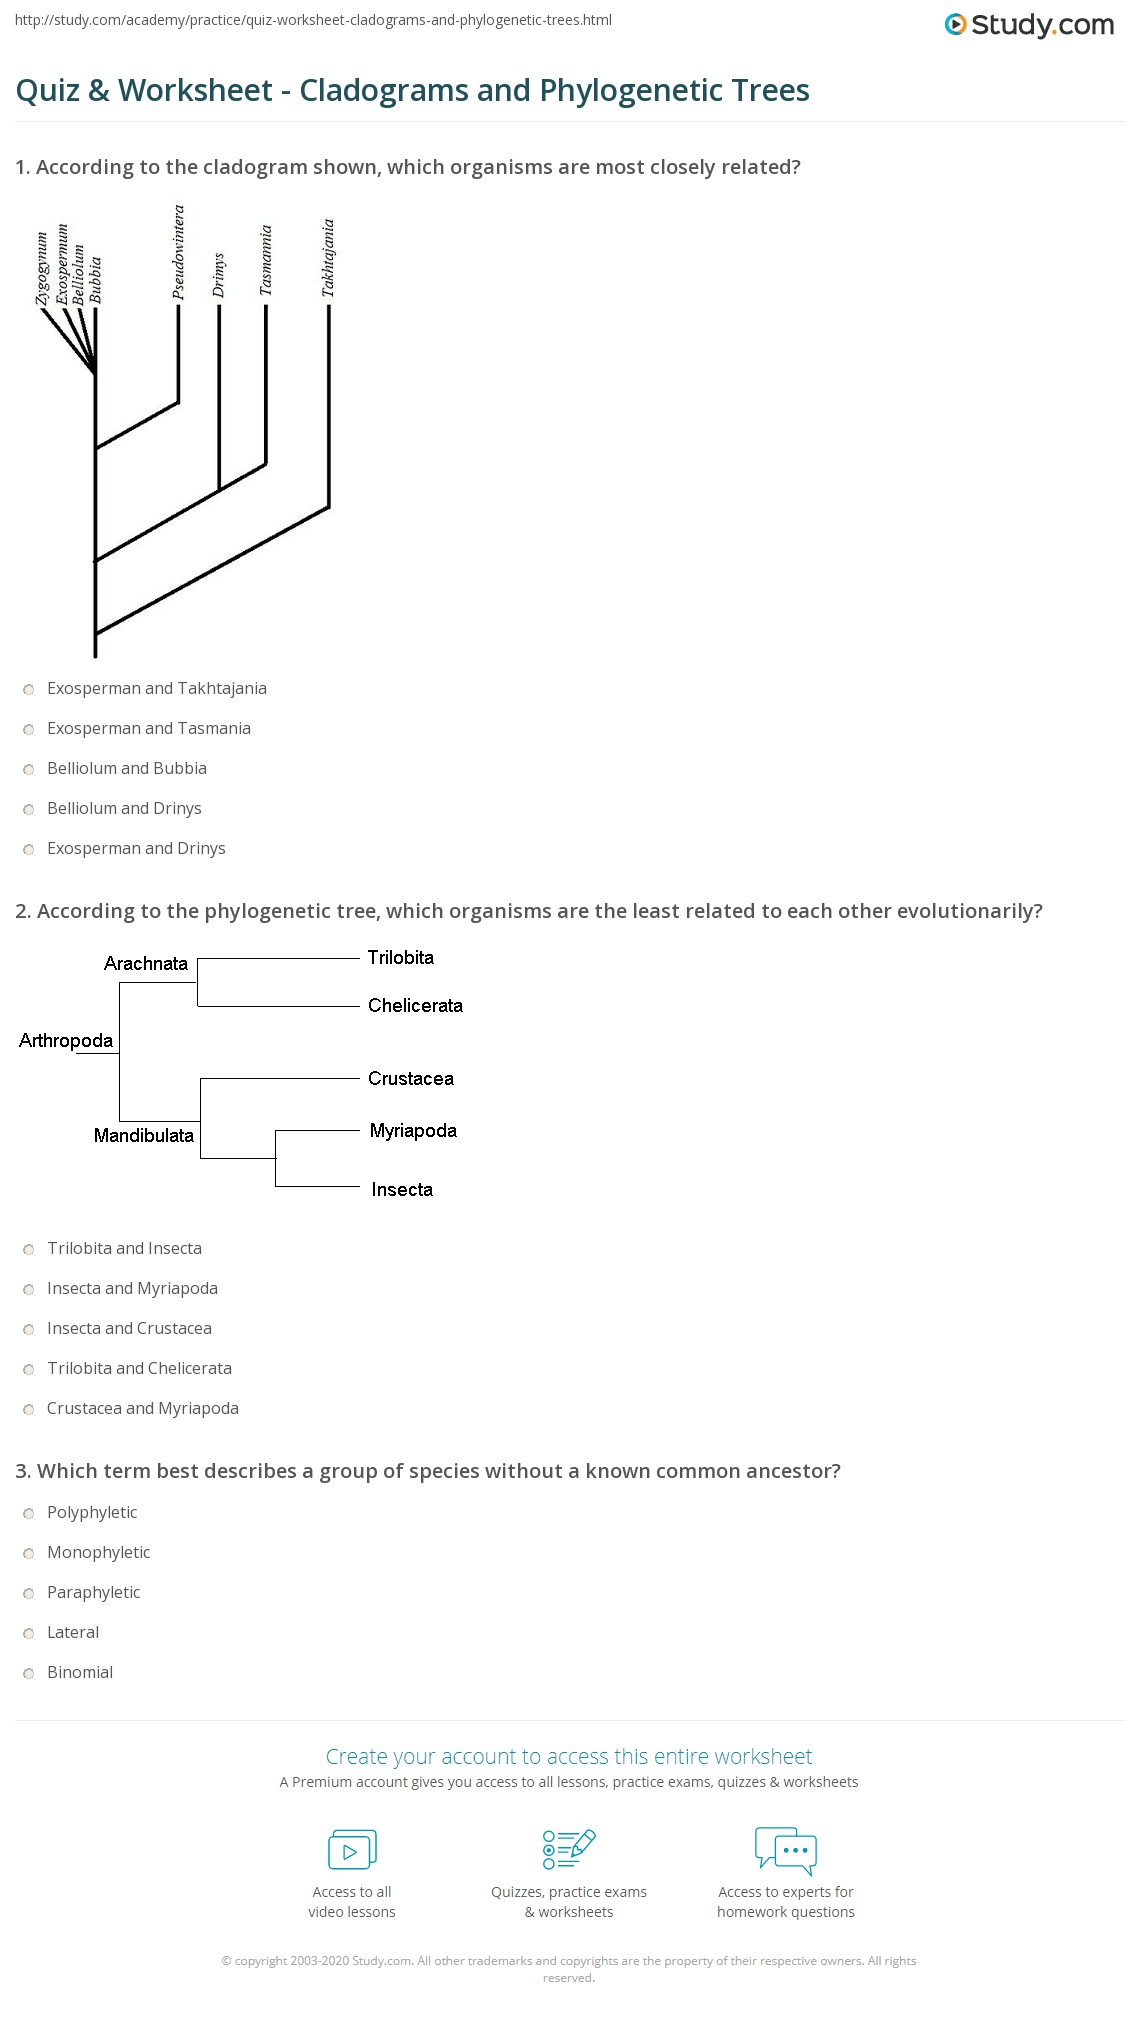 Quiz Worksheet Cladograms And Phylogenetic Trees Study Com